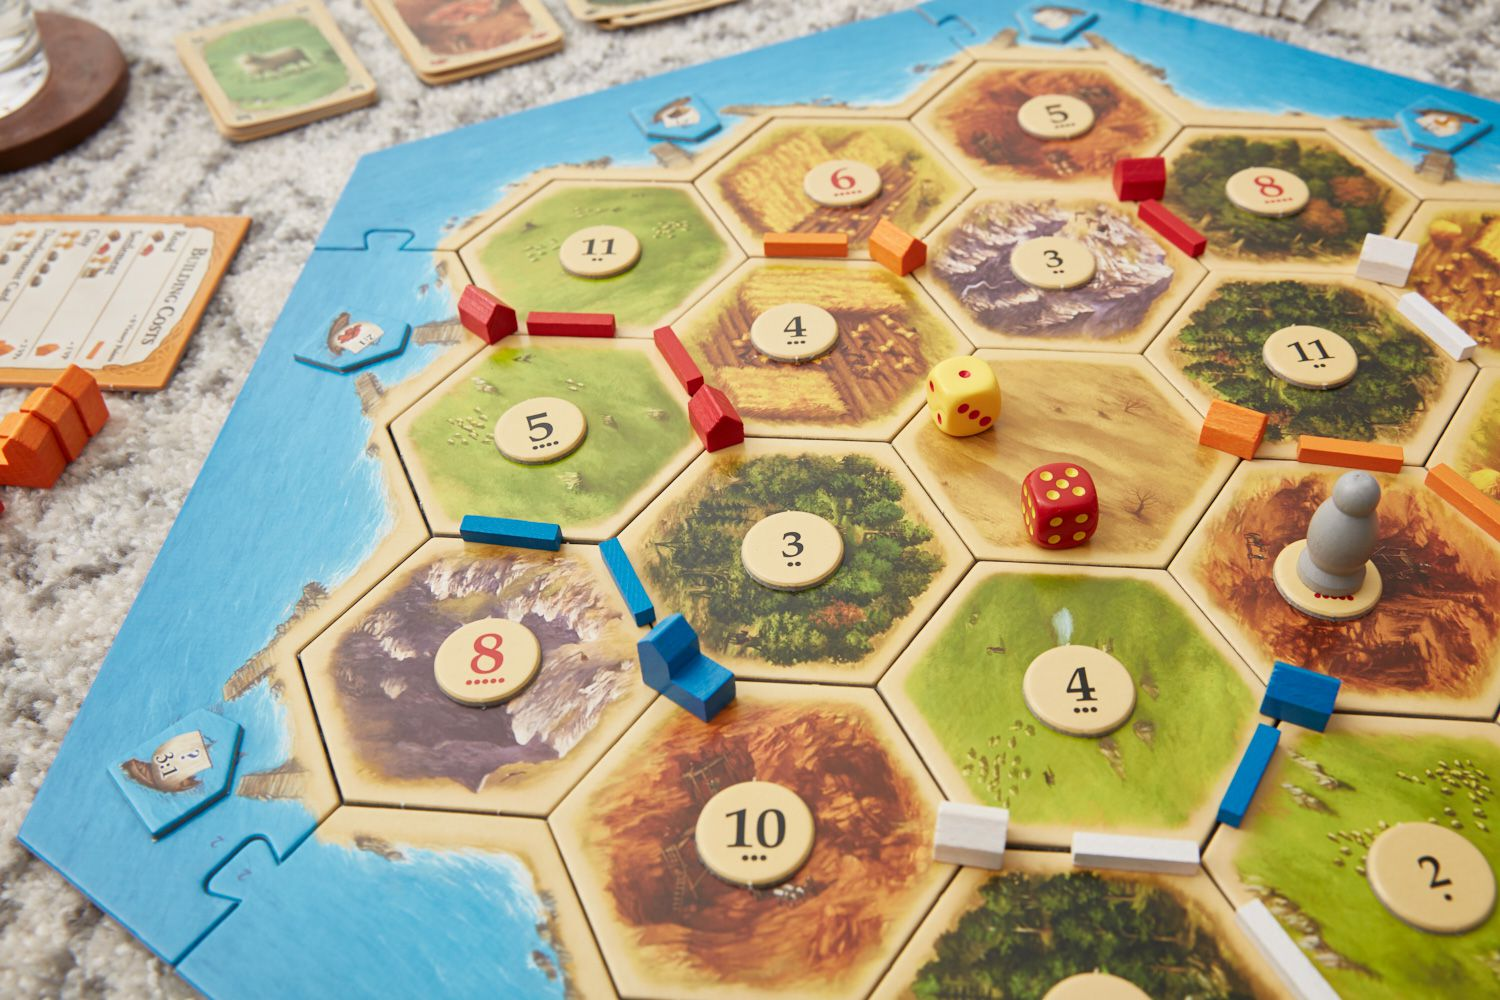 20 life lessons from the game of Catan